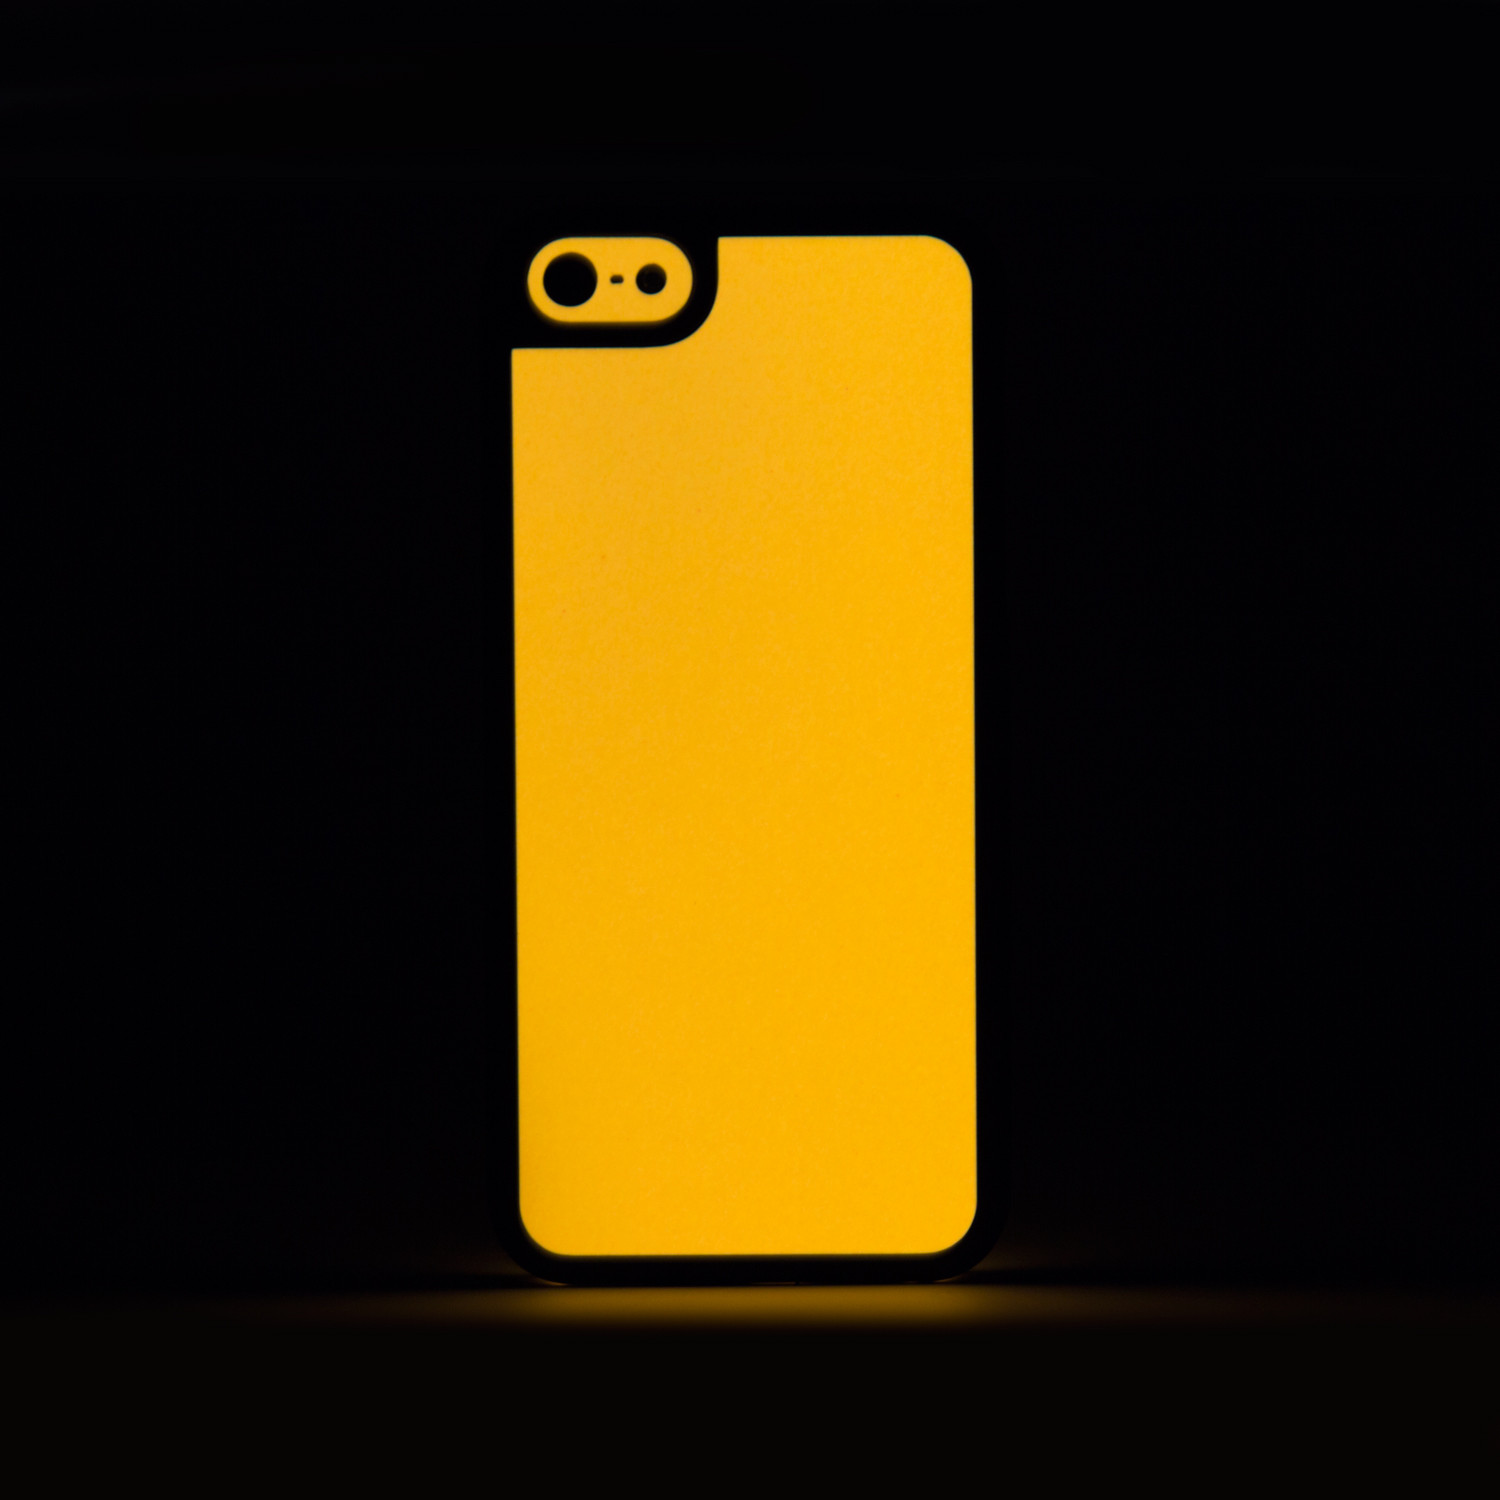 glow hard case orange iphone 5 5s slickwraps glow cases touch of modern. Black Bedroom Furniture Sets. Home Design Ideas